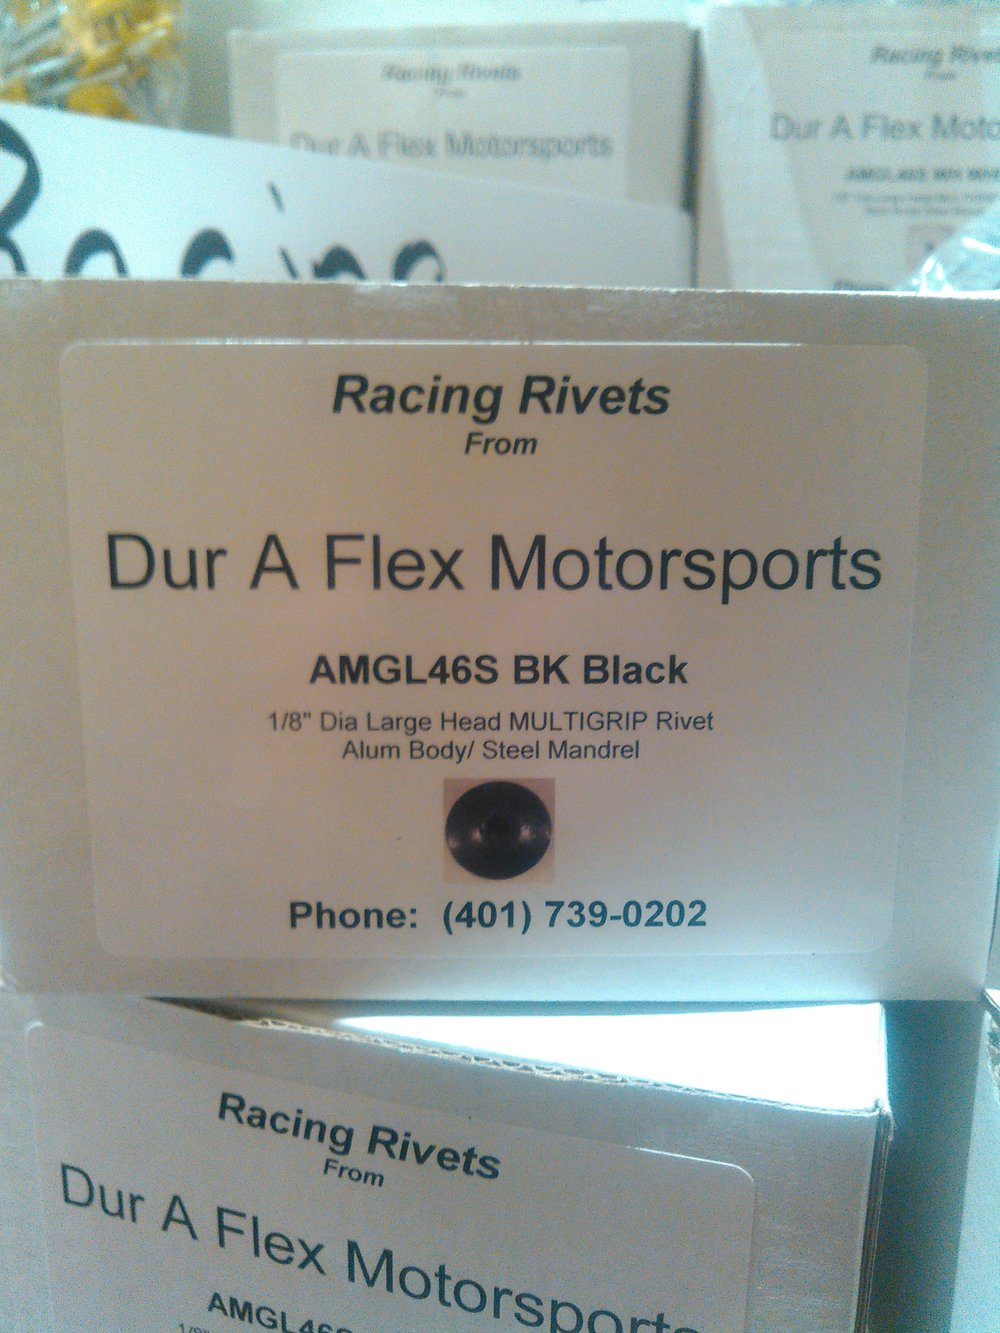 Dur-A-Flex is your one stop shop for Racing Rivets. We have many styles and colors in stock!      3/16 - Exploder (Tri-Fold) - White, Black, and Silver      3/16 - Regular - Black, White, Silver, Red, Blue, Yellow      1/8 - Regular - Black, White, Silver, Red